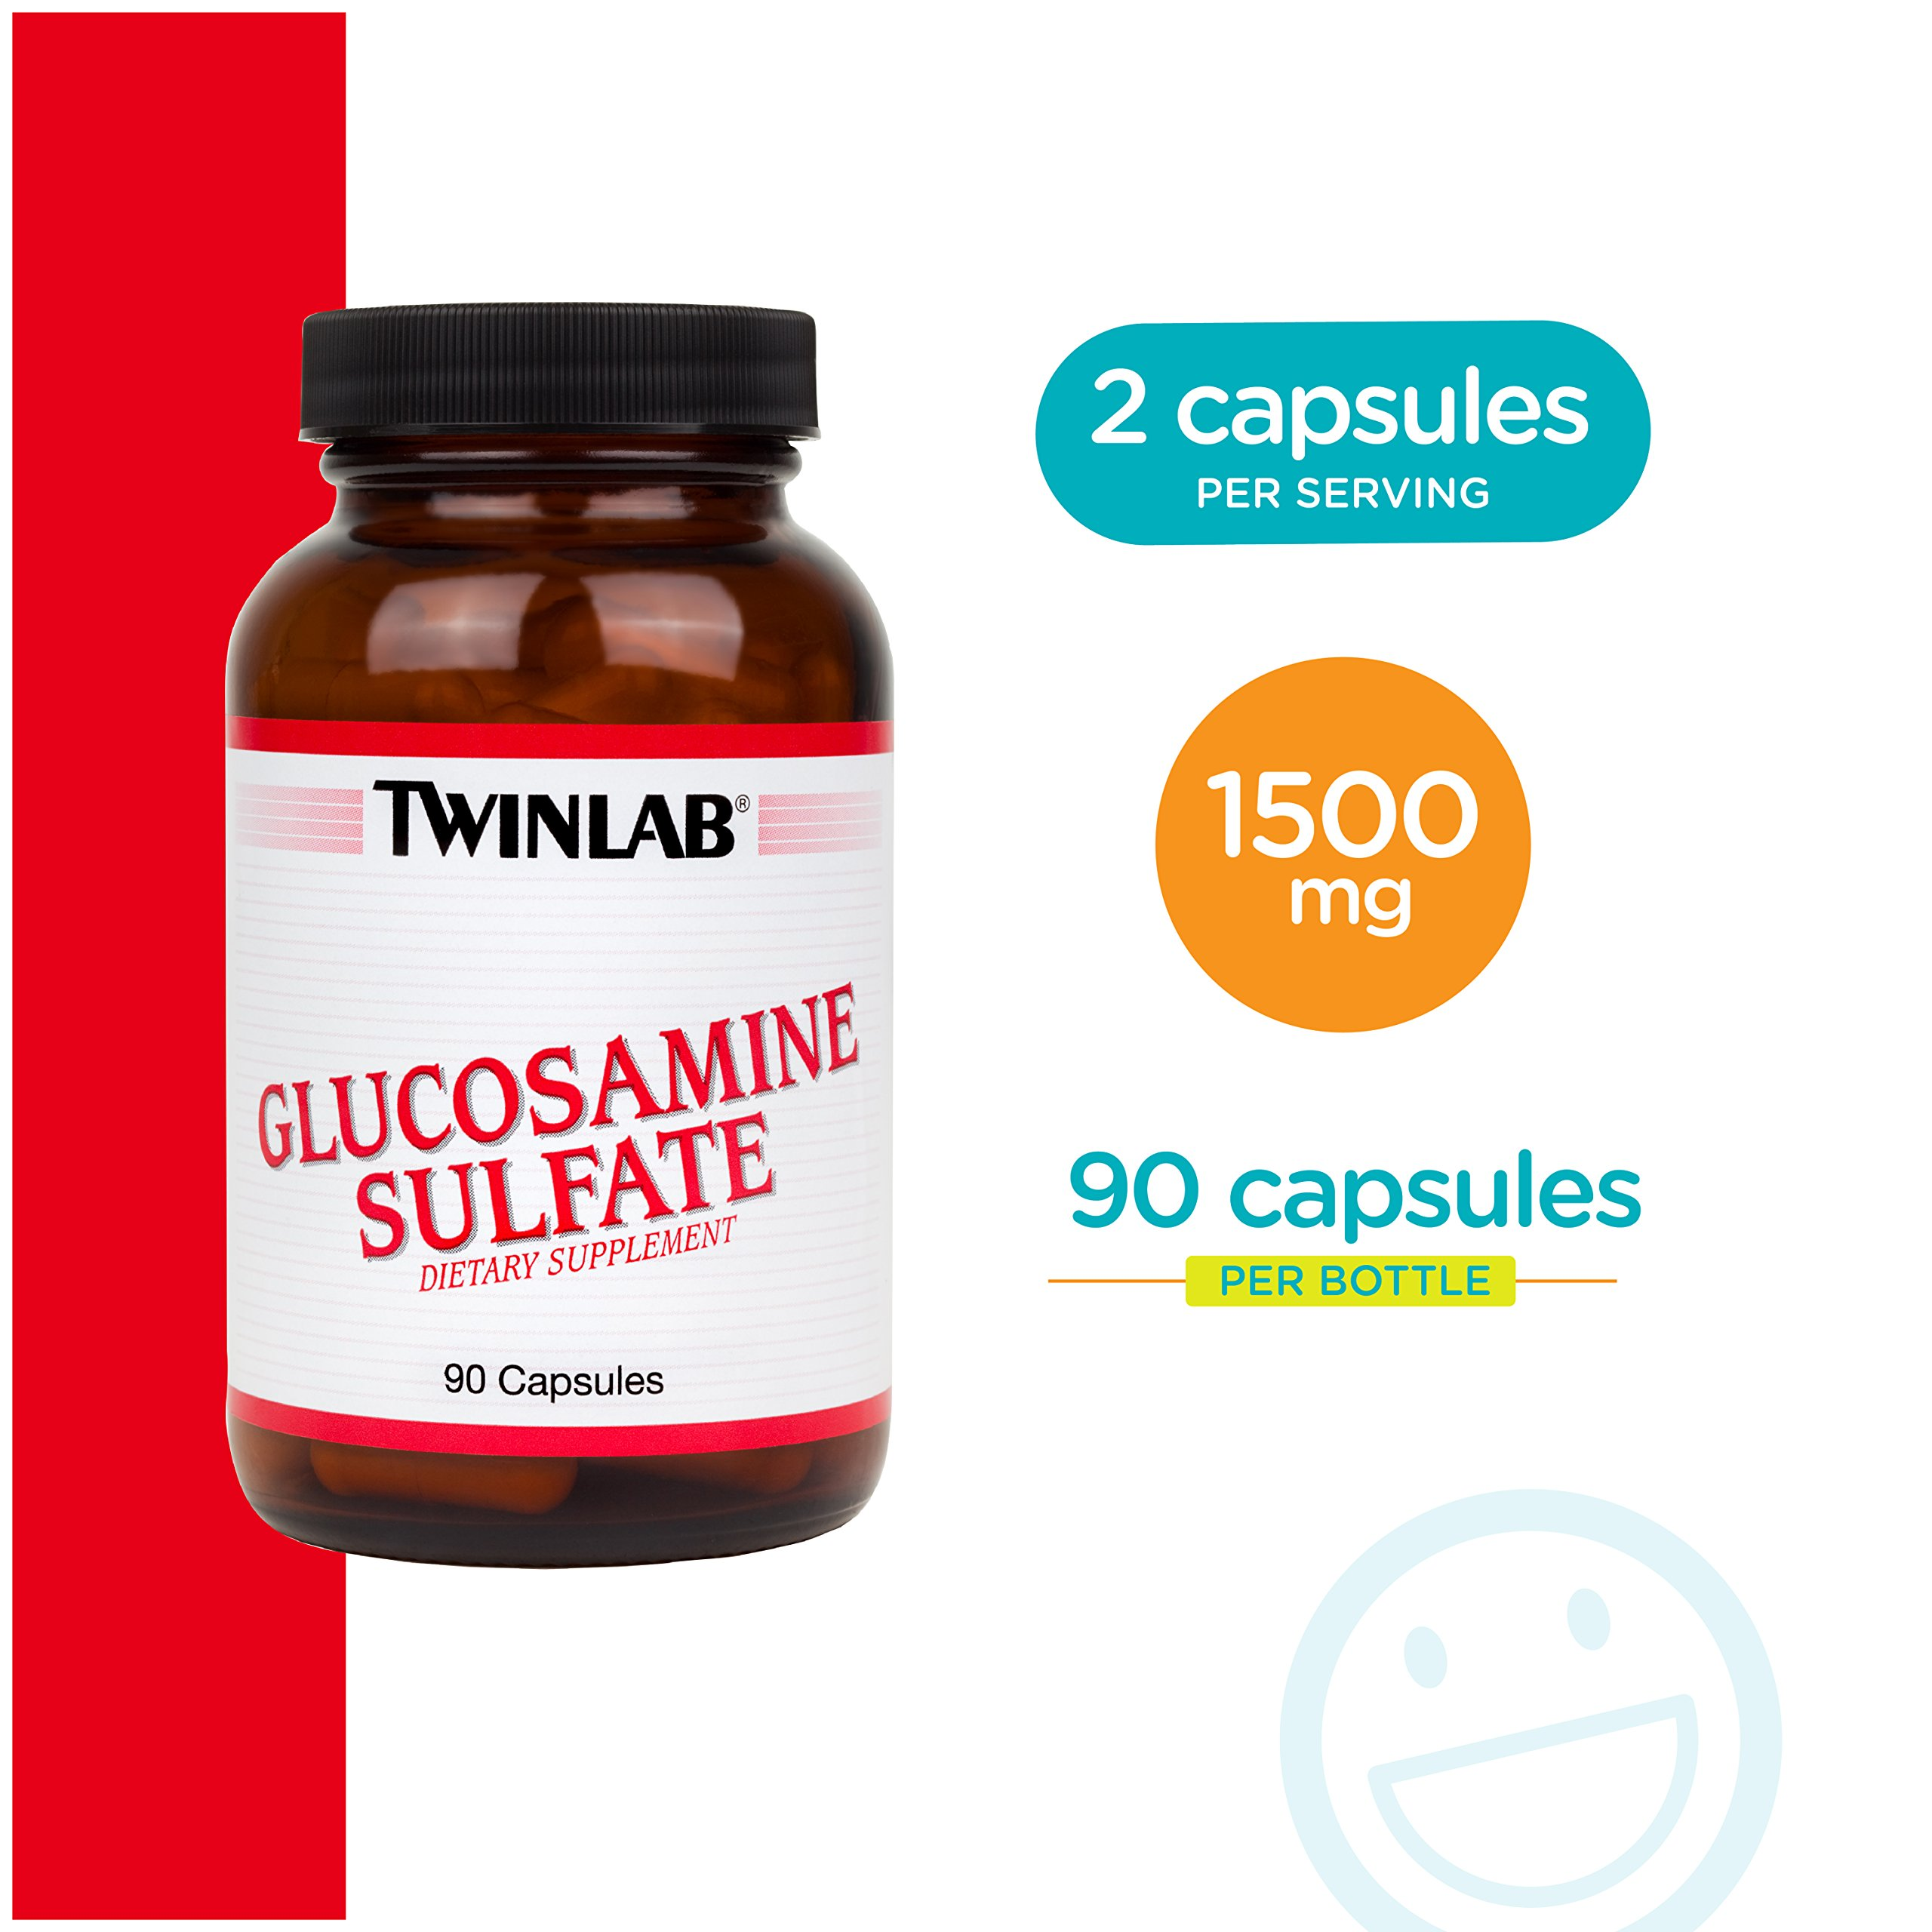 Twinlab Glucosamine Sulfate 1500 mg, 90 Capsules by Twinlab (Image #5)